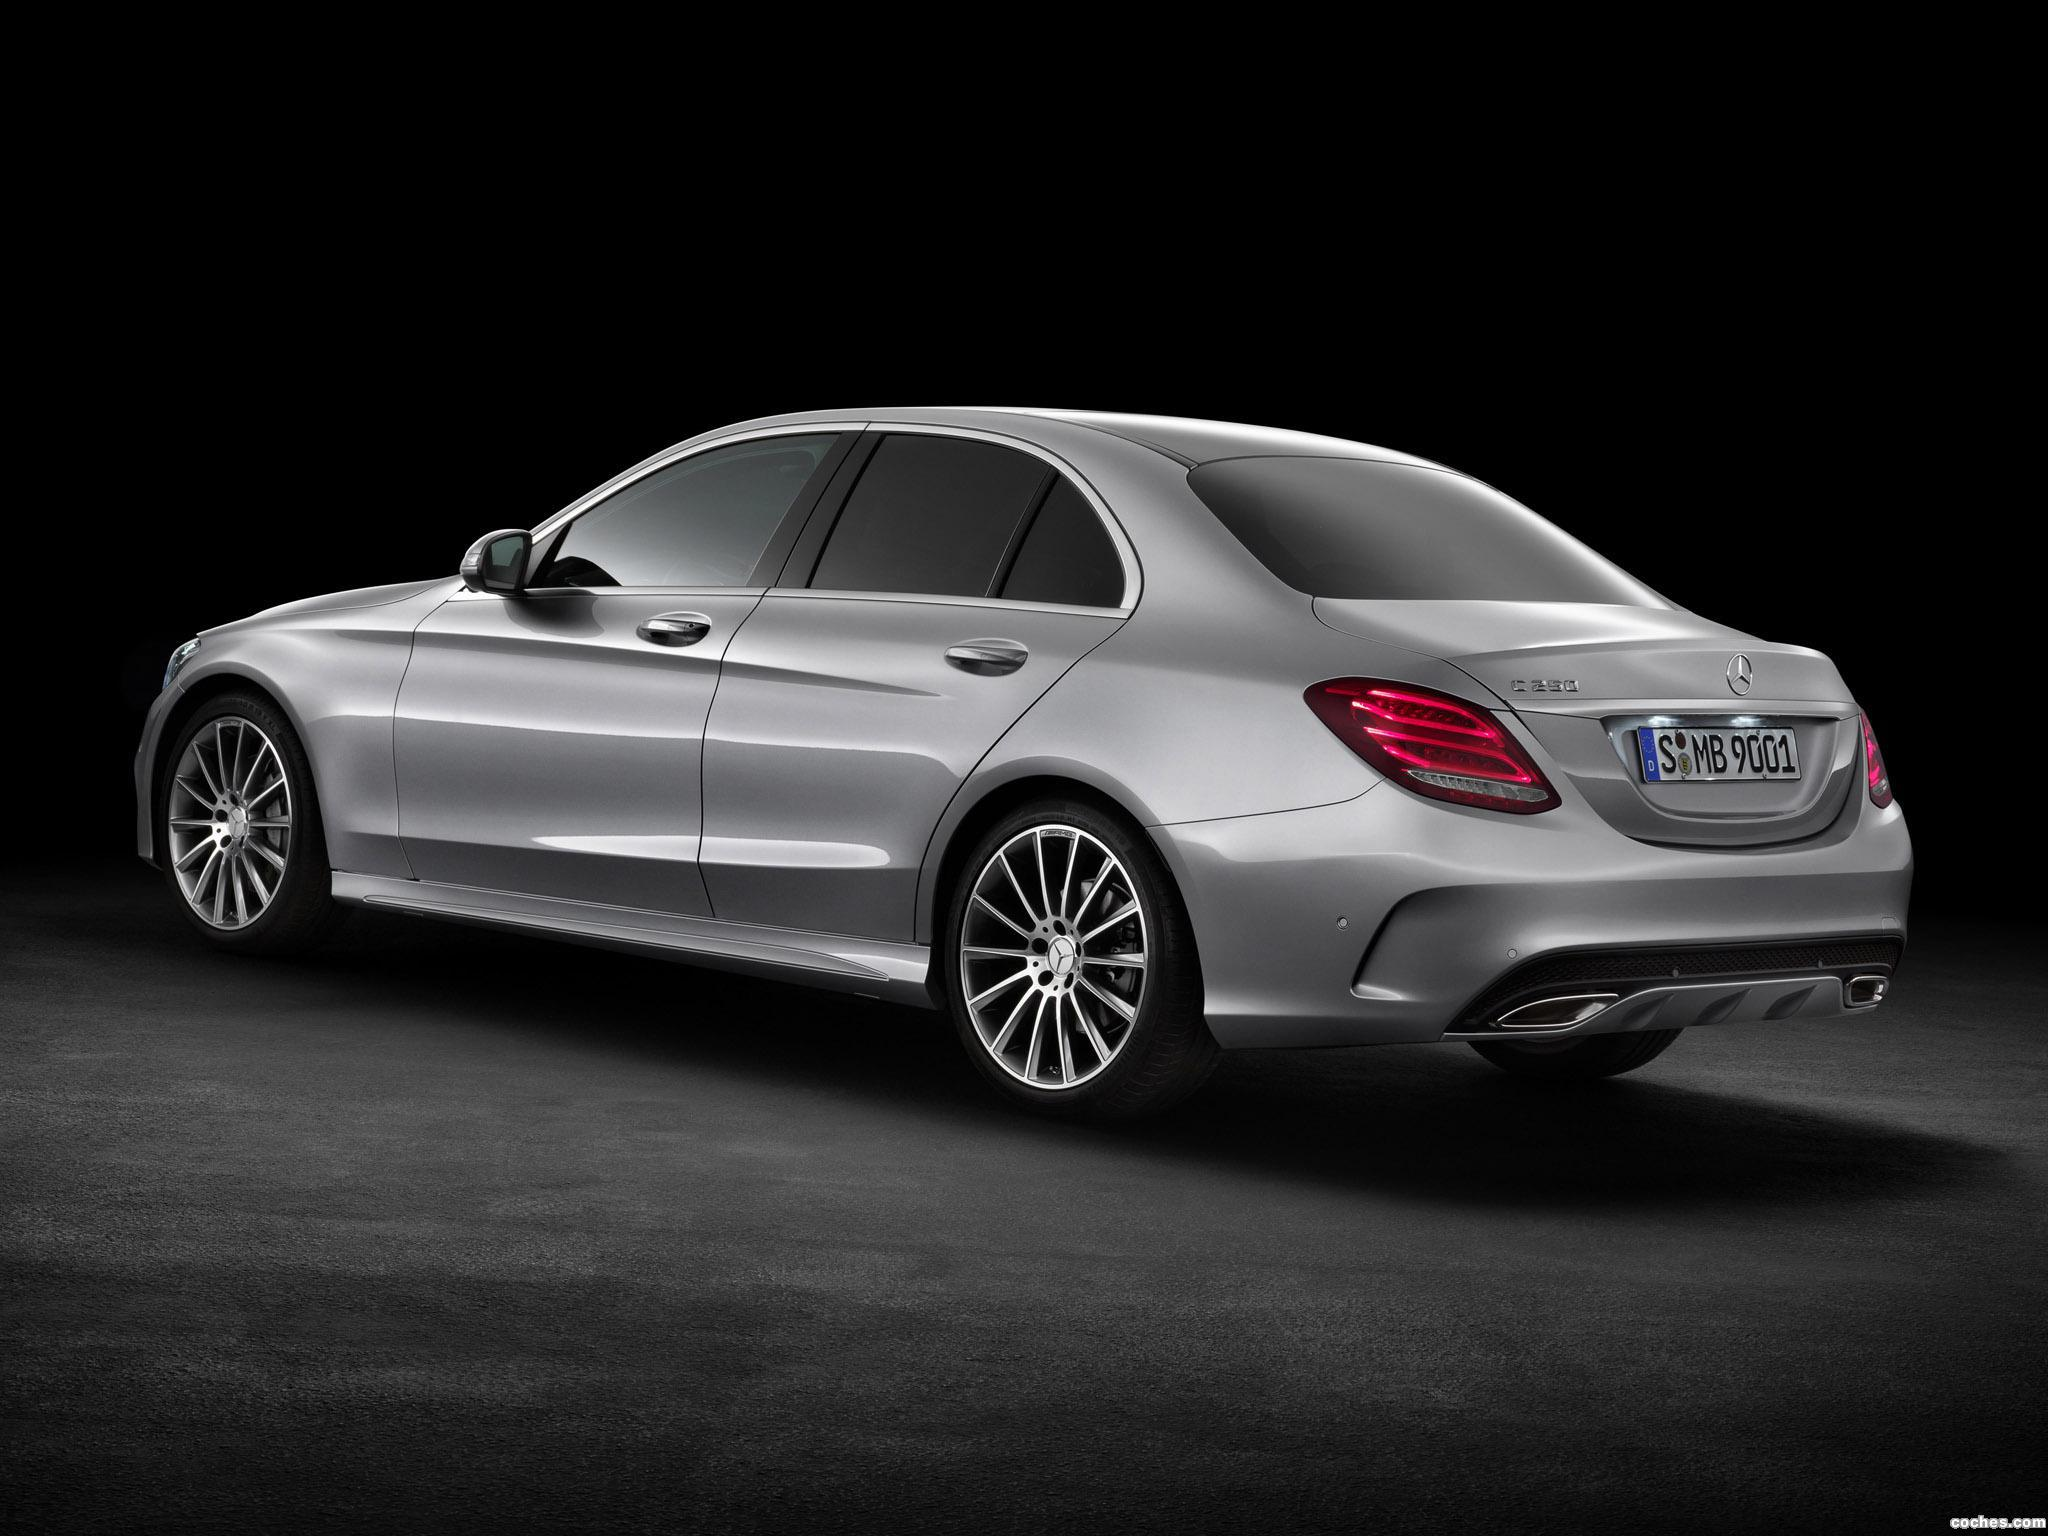 fotos de mercedes clase c c250 amg line w205 2014 foto 8. Black Bedroom Furniture Sets. Home Design Ideas